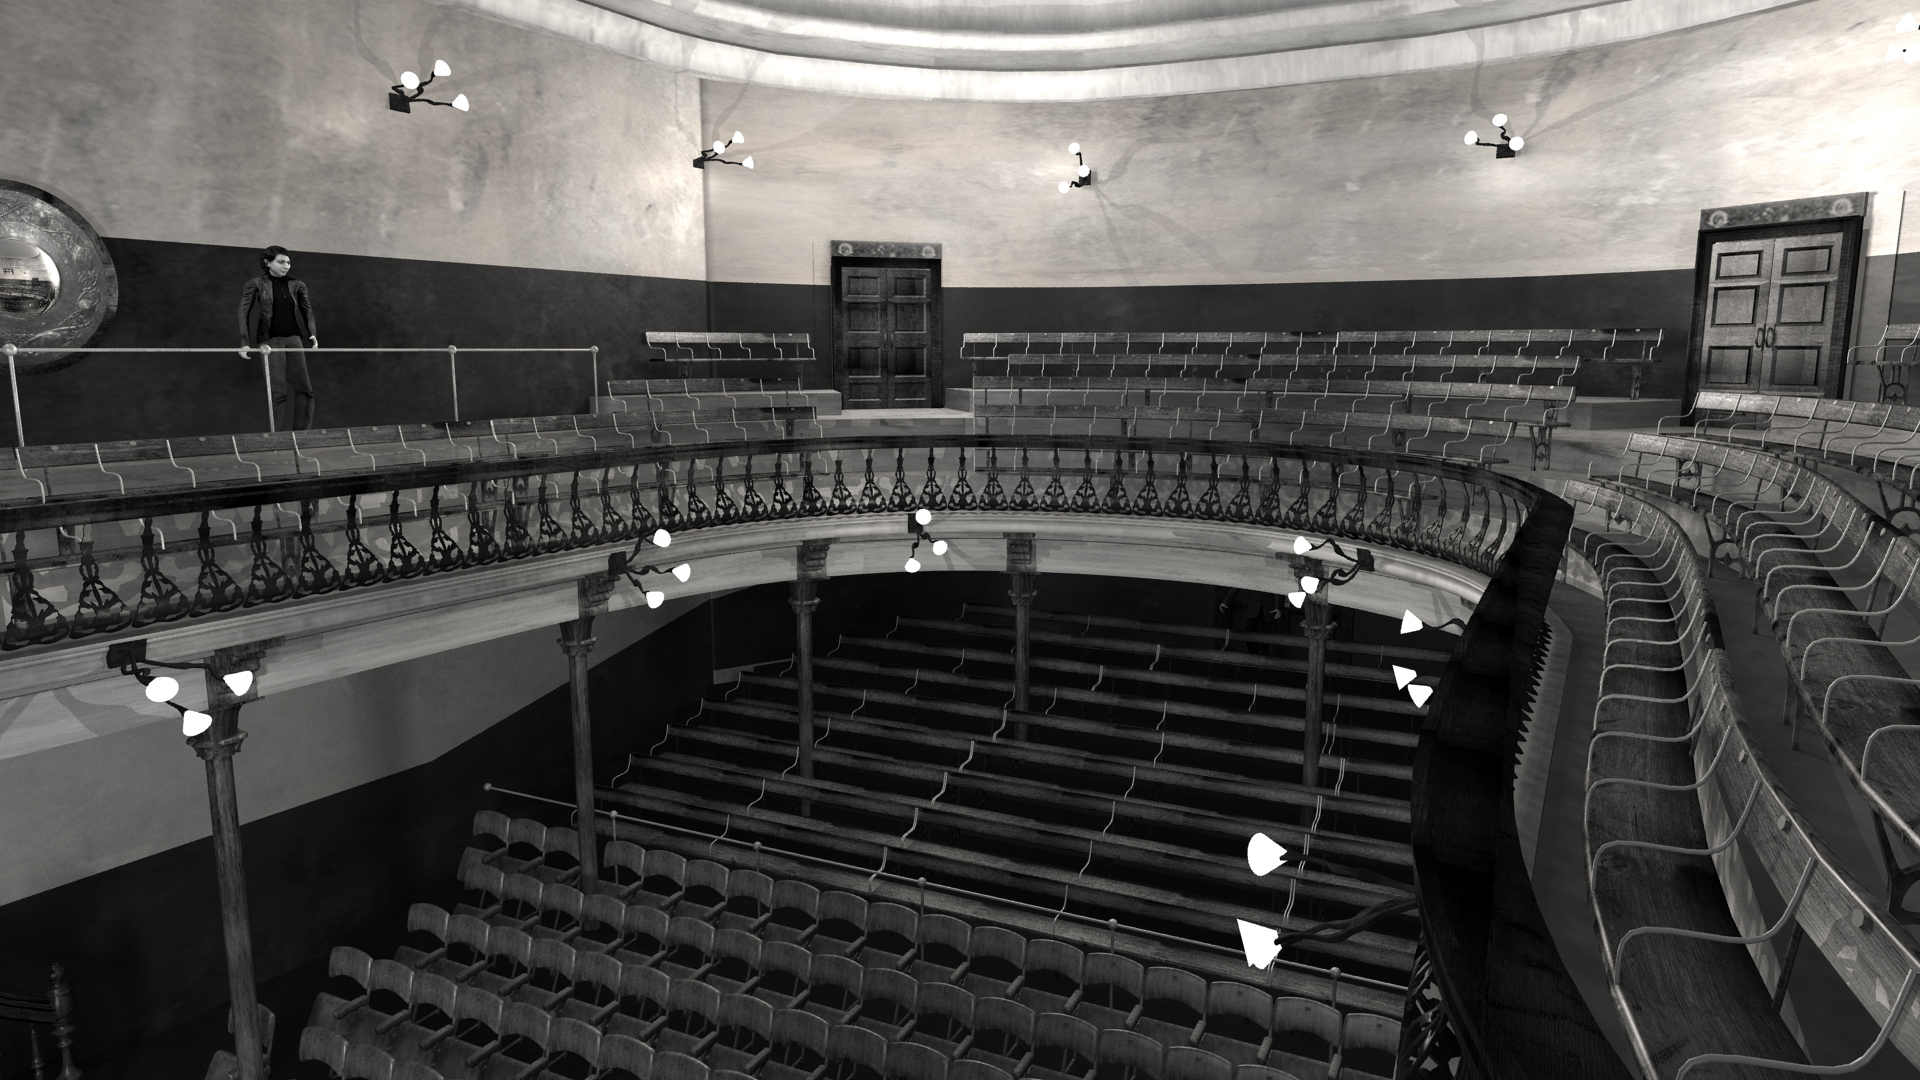 View towards Balcony of Abbey Theatre, 1904. Digital model by Hugh Denard (research) and Niall Ó hOisín/Noho (modelling), 2011.